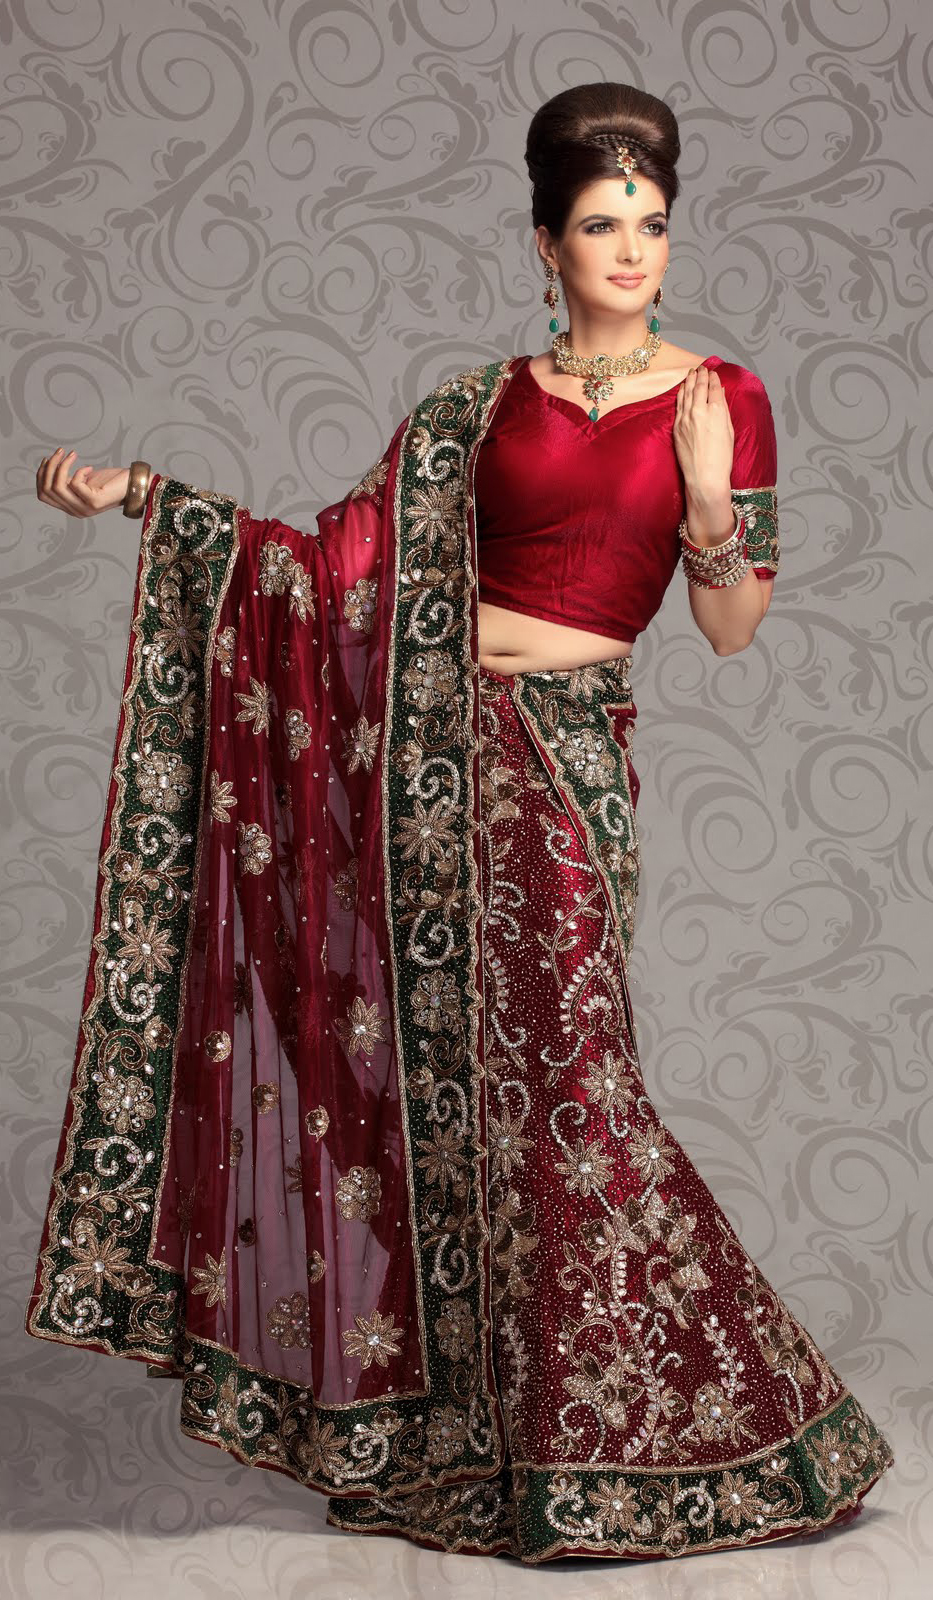 Indian Lehenga Choli For Wedding Wallpaper Photos Pictures Pics Images ...